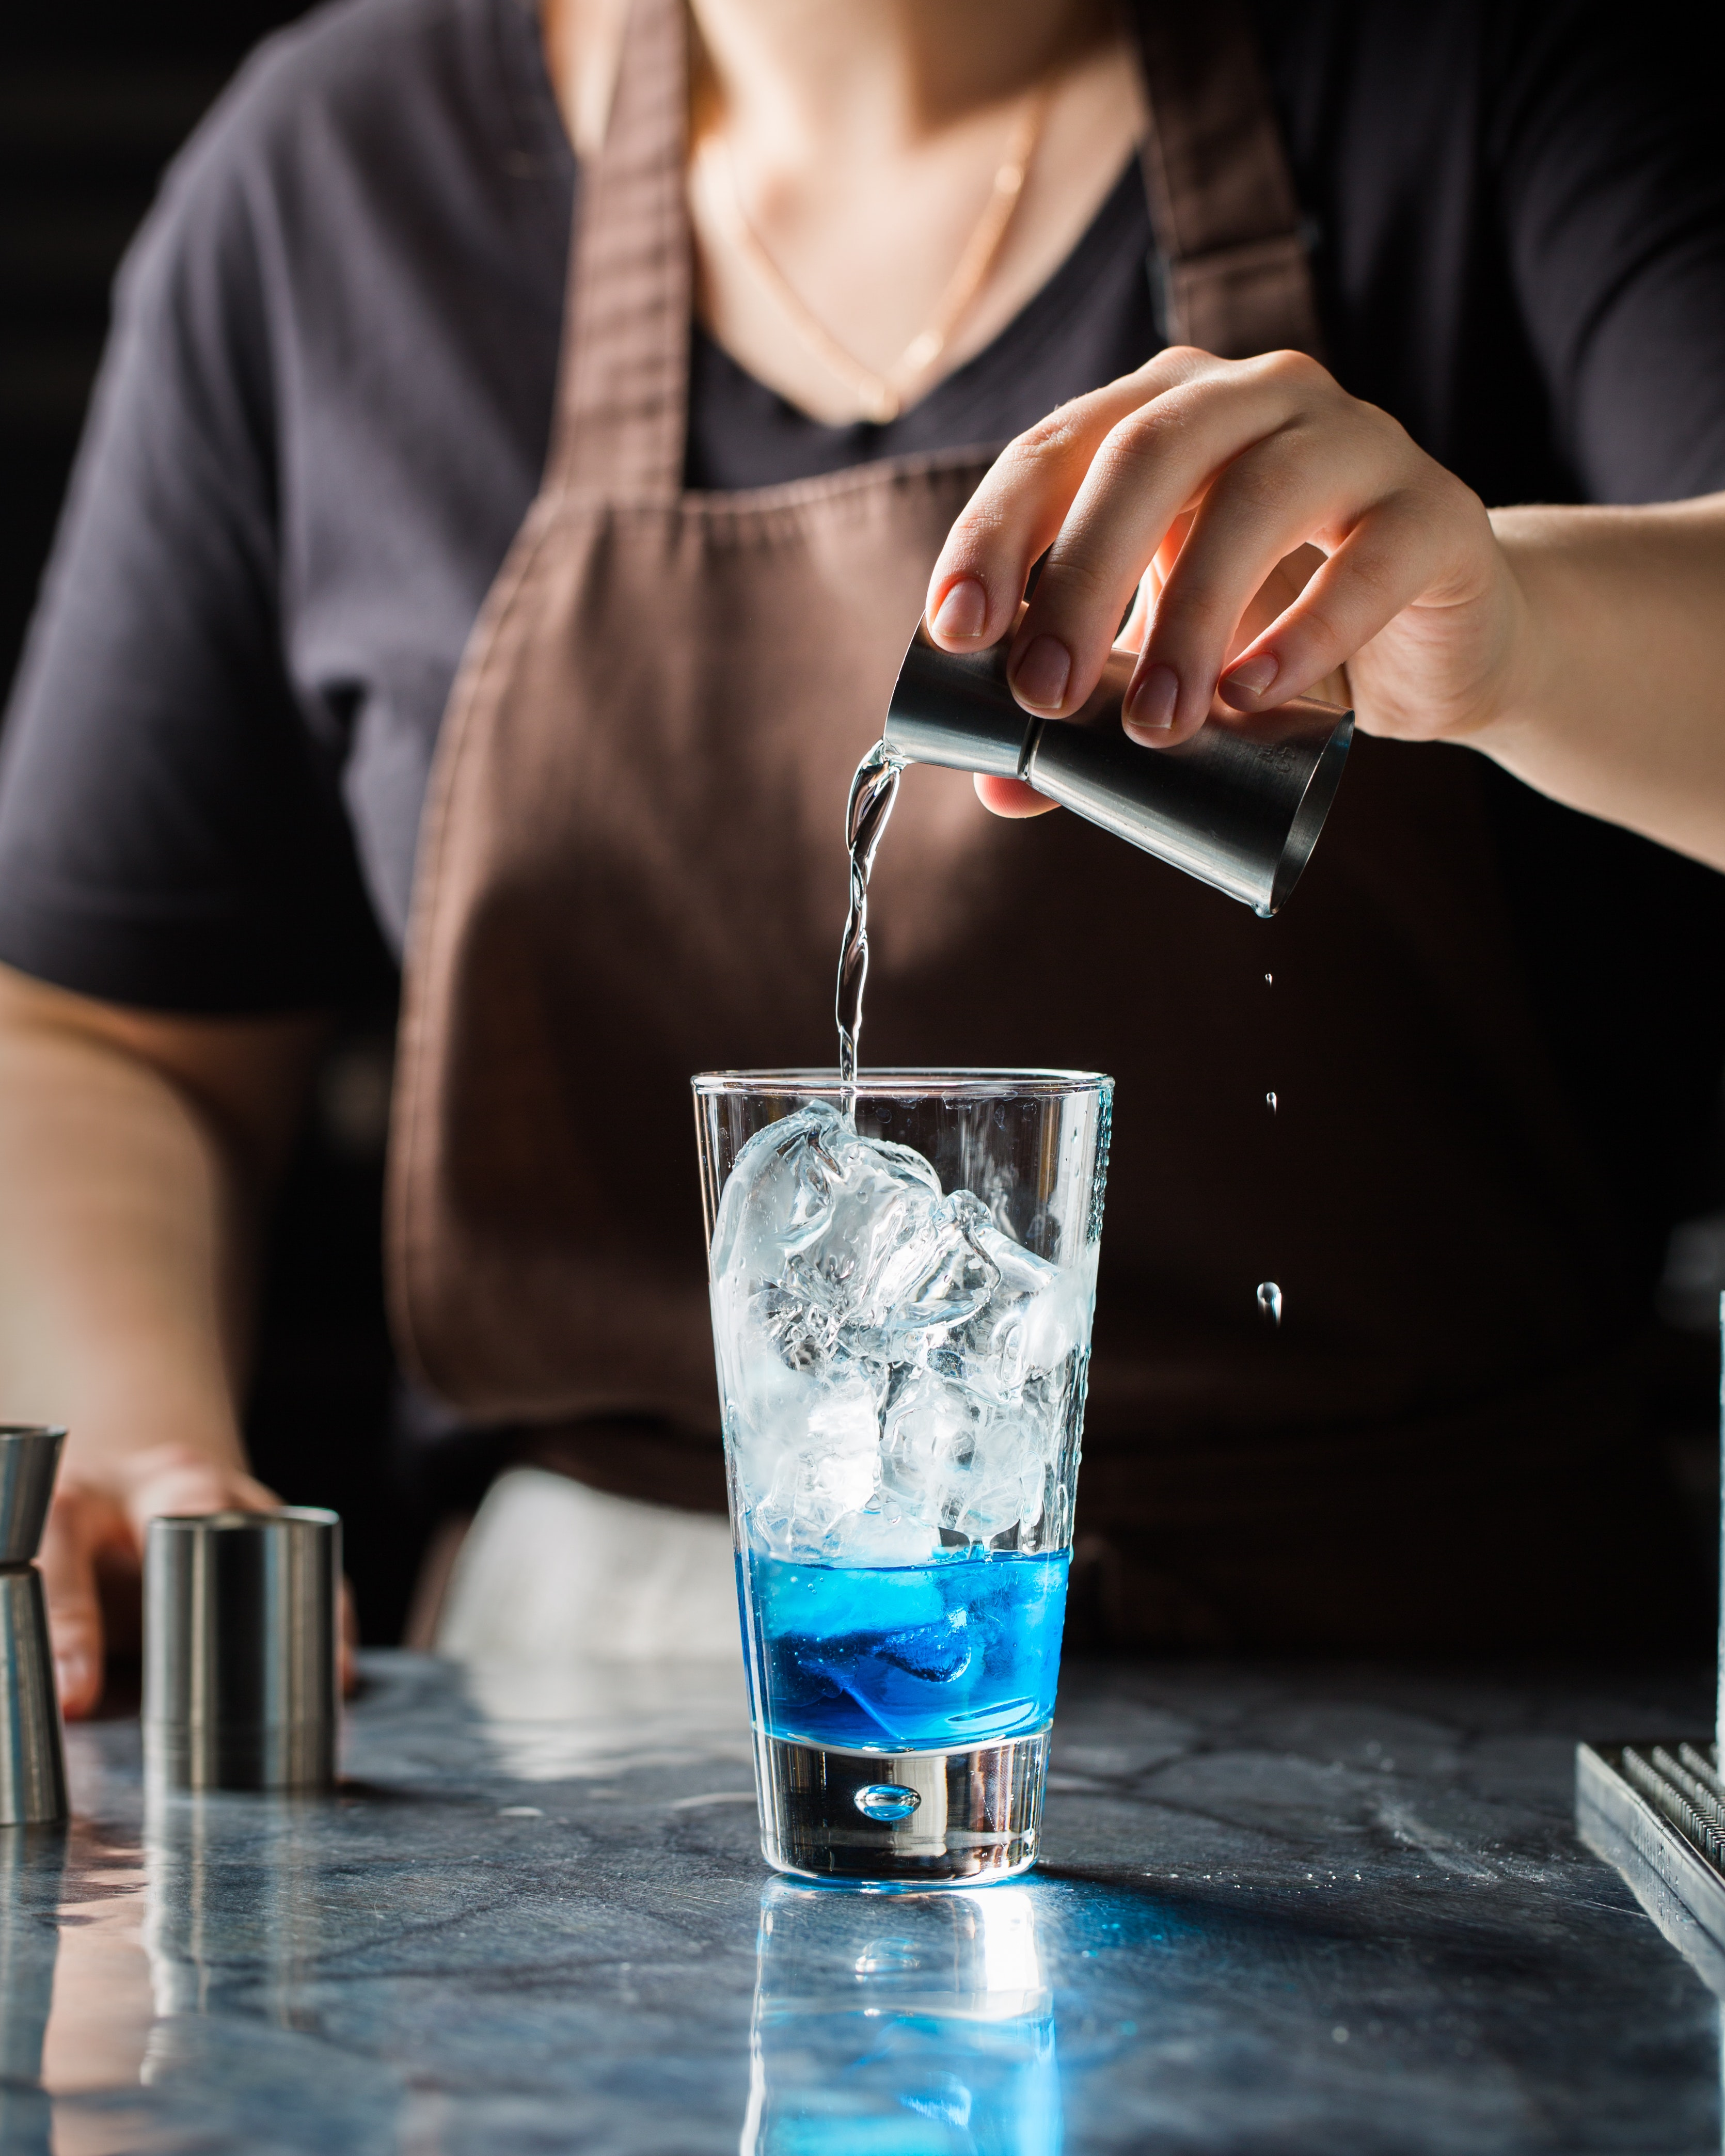 A jigger pouring alcohol into a glass.